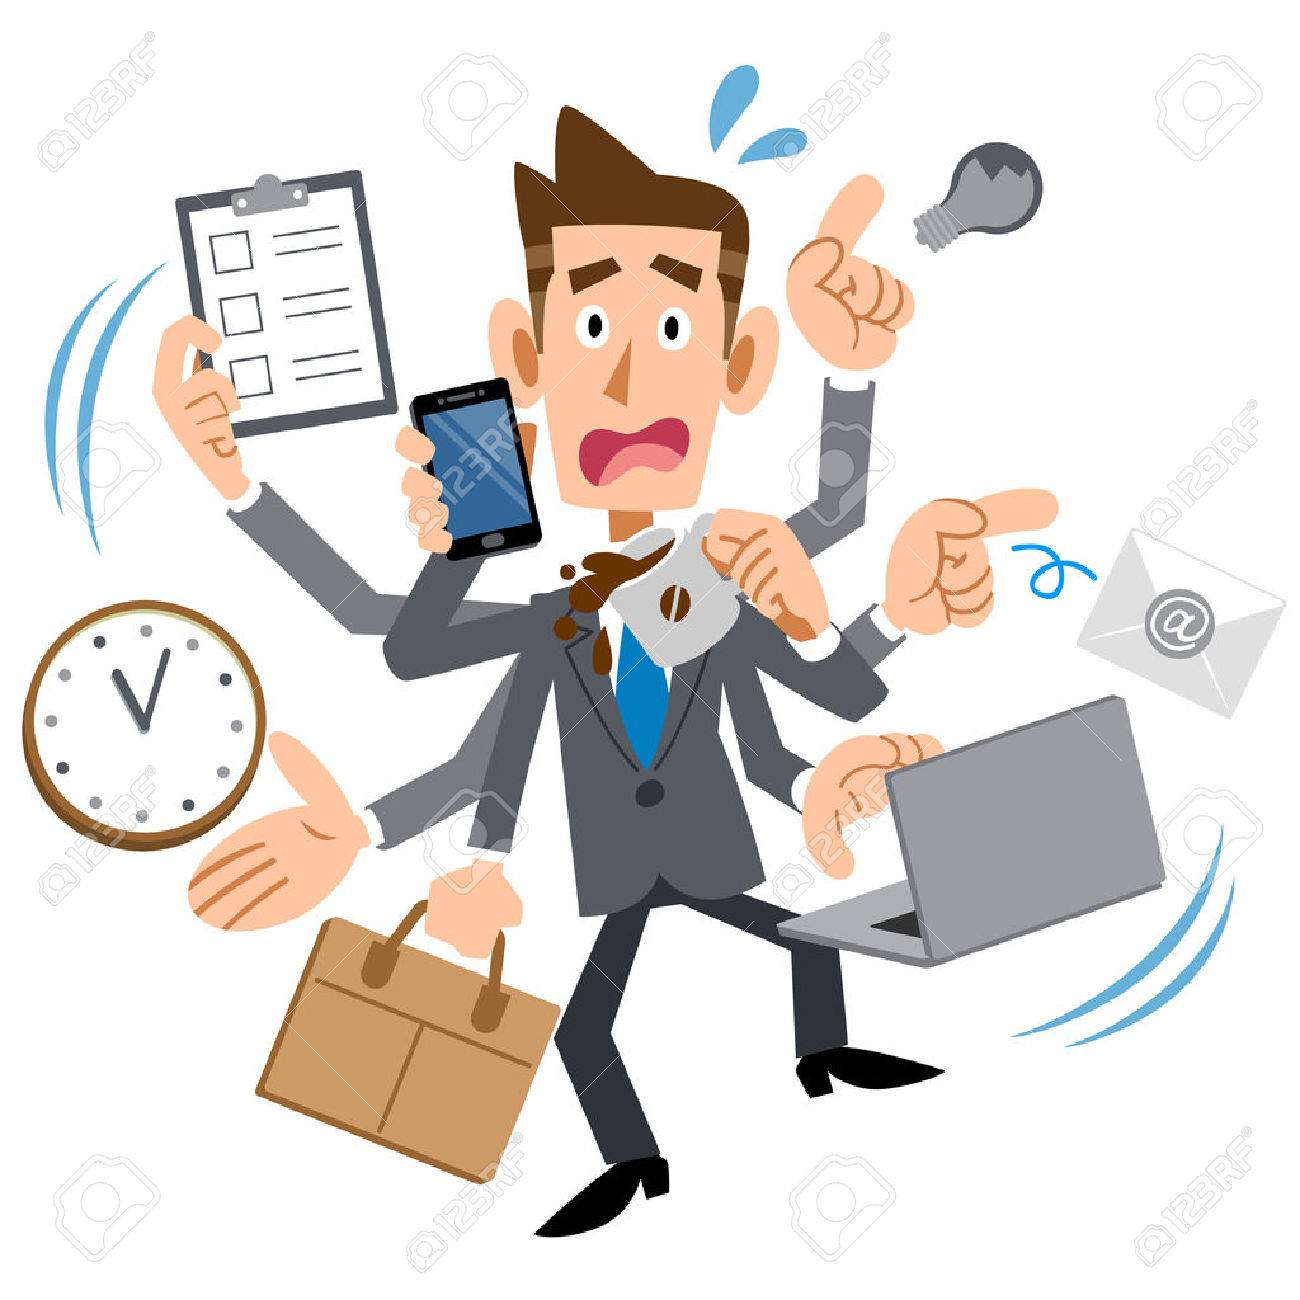 12 622 busy office cliparts stock vector and royalty free busy rh 123rf com